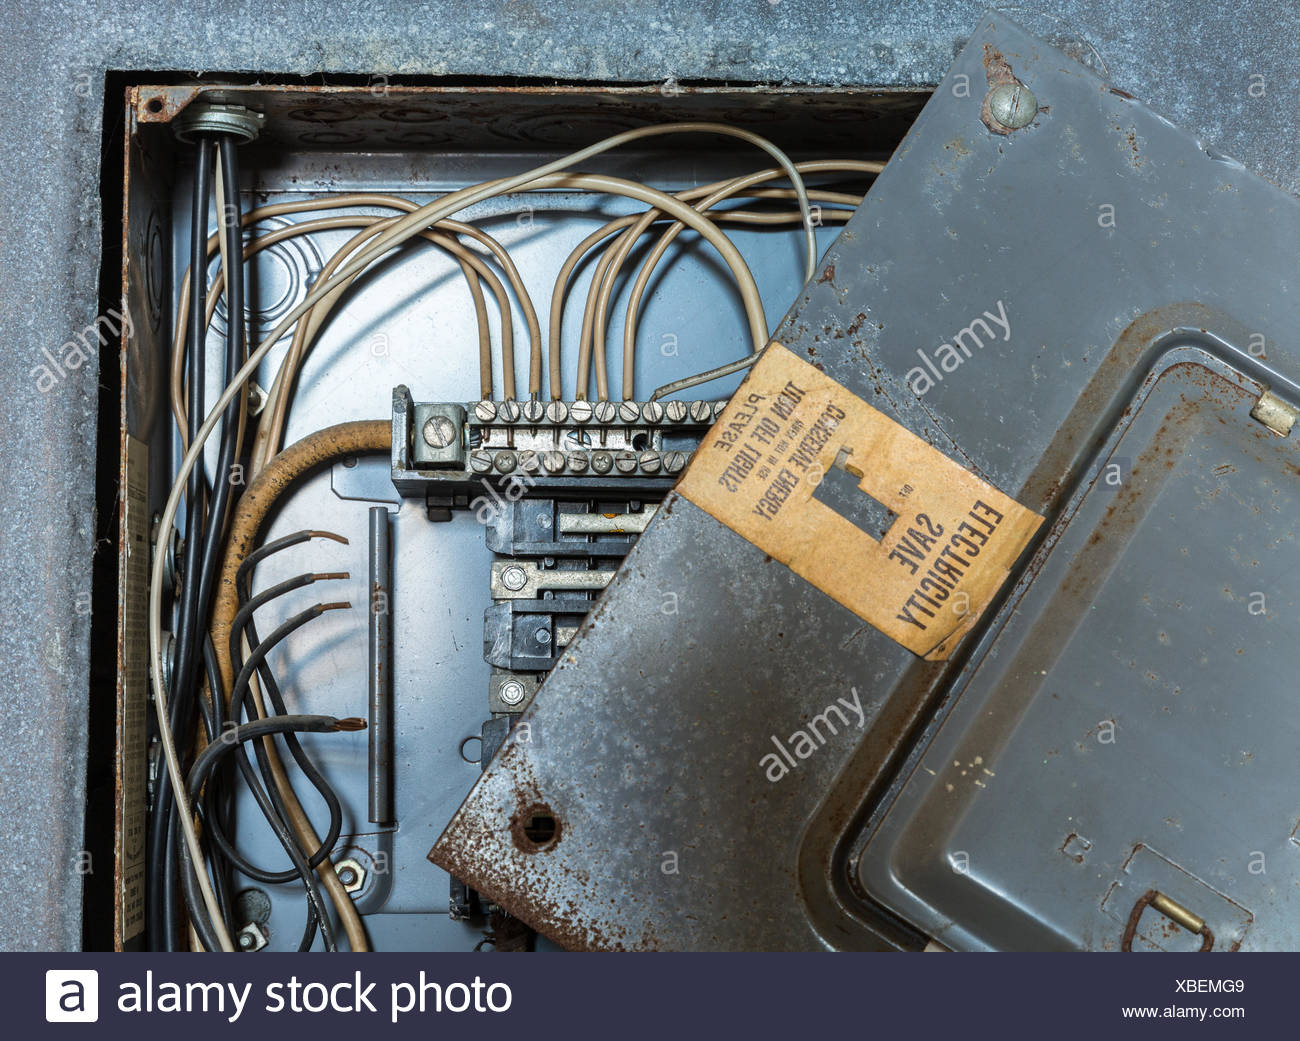 Old electrical distribution or wiring box Stock Photo: 282450569 - Alamy